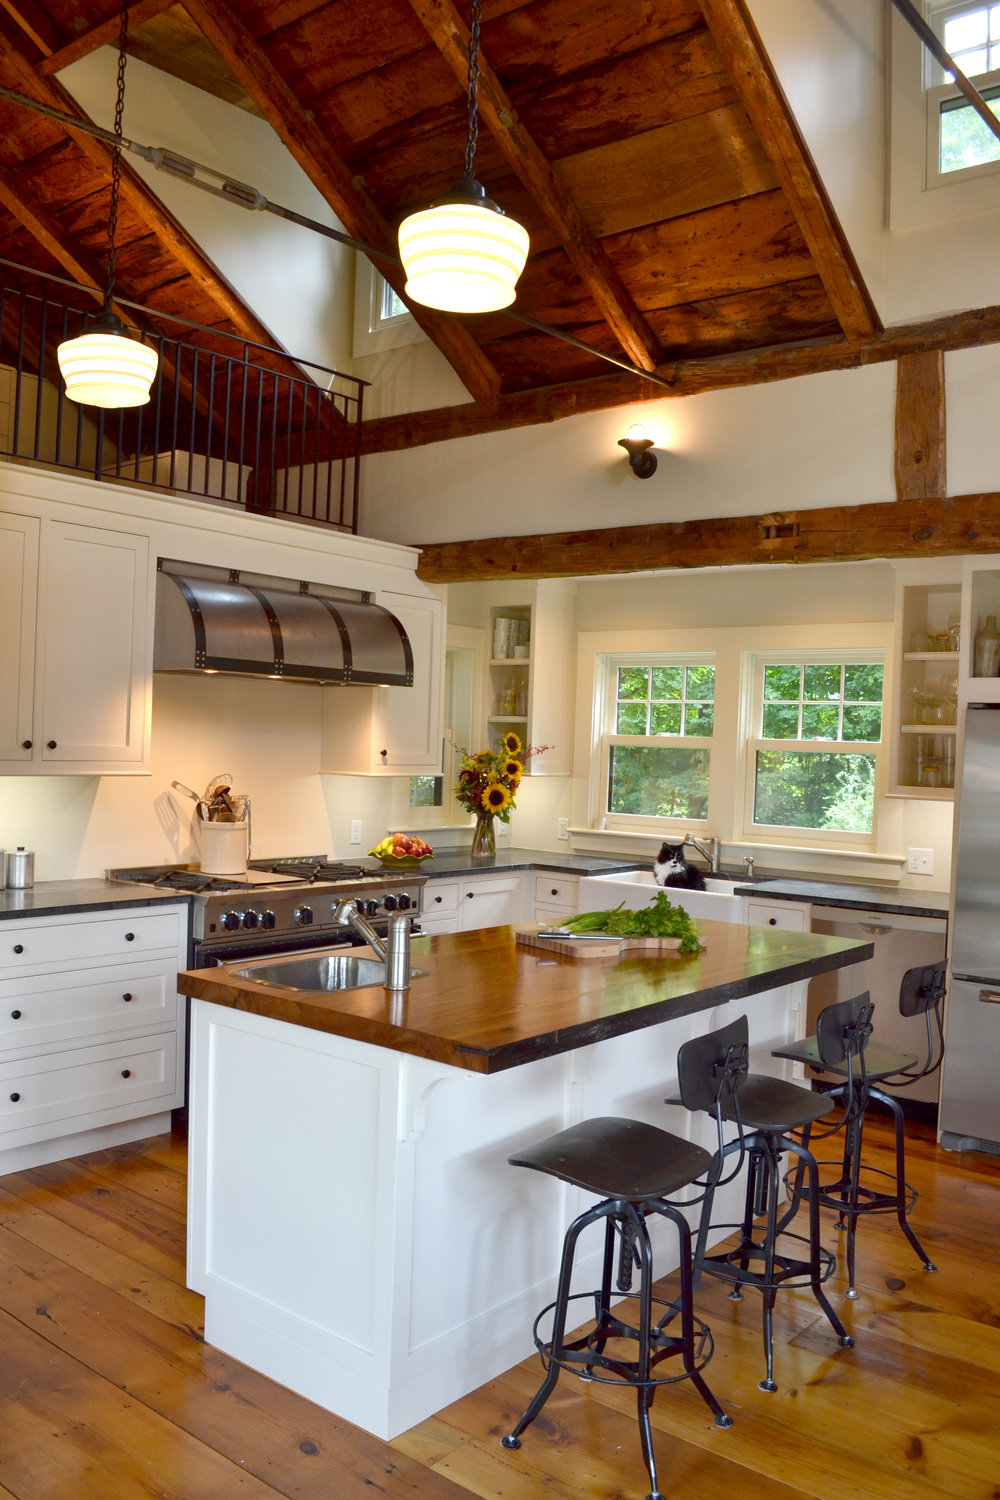 Historic Timber Frame Home Remodel | Dickinson Architects, LLC | Acton, MA